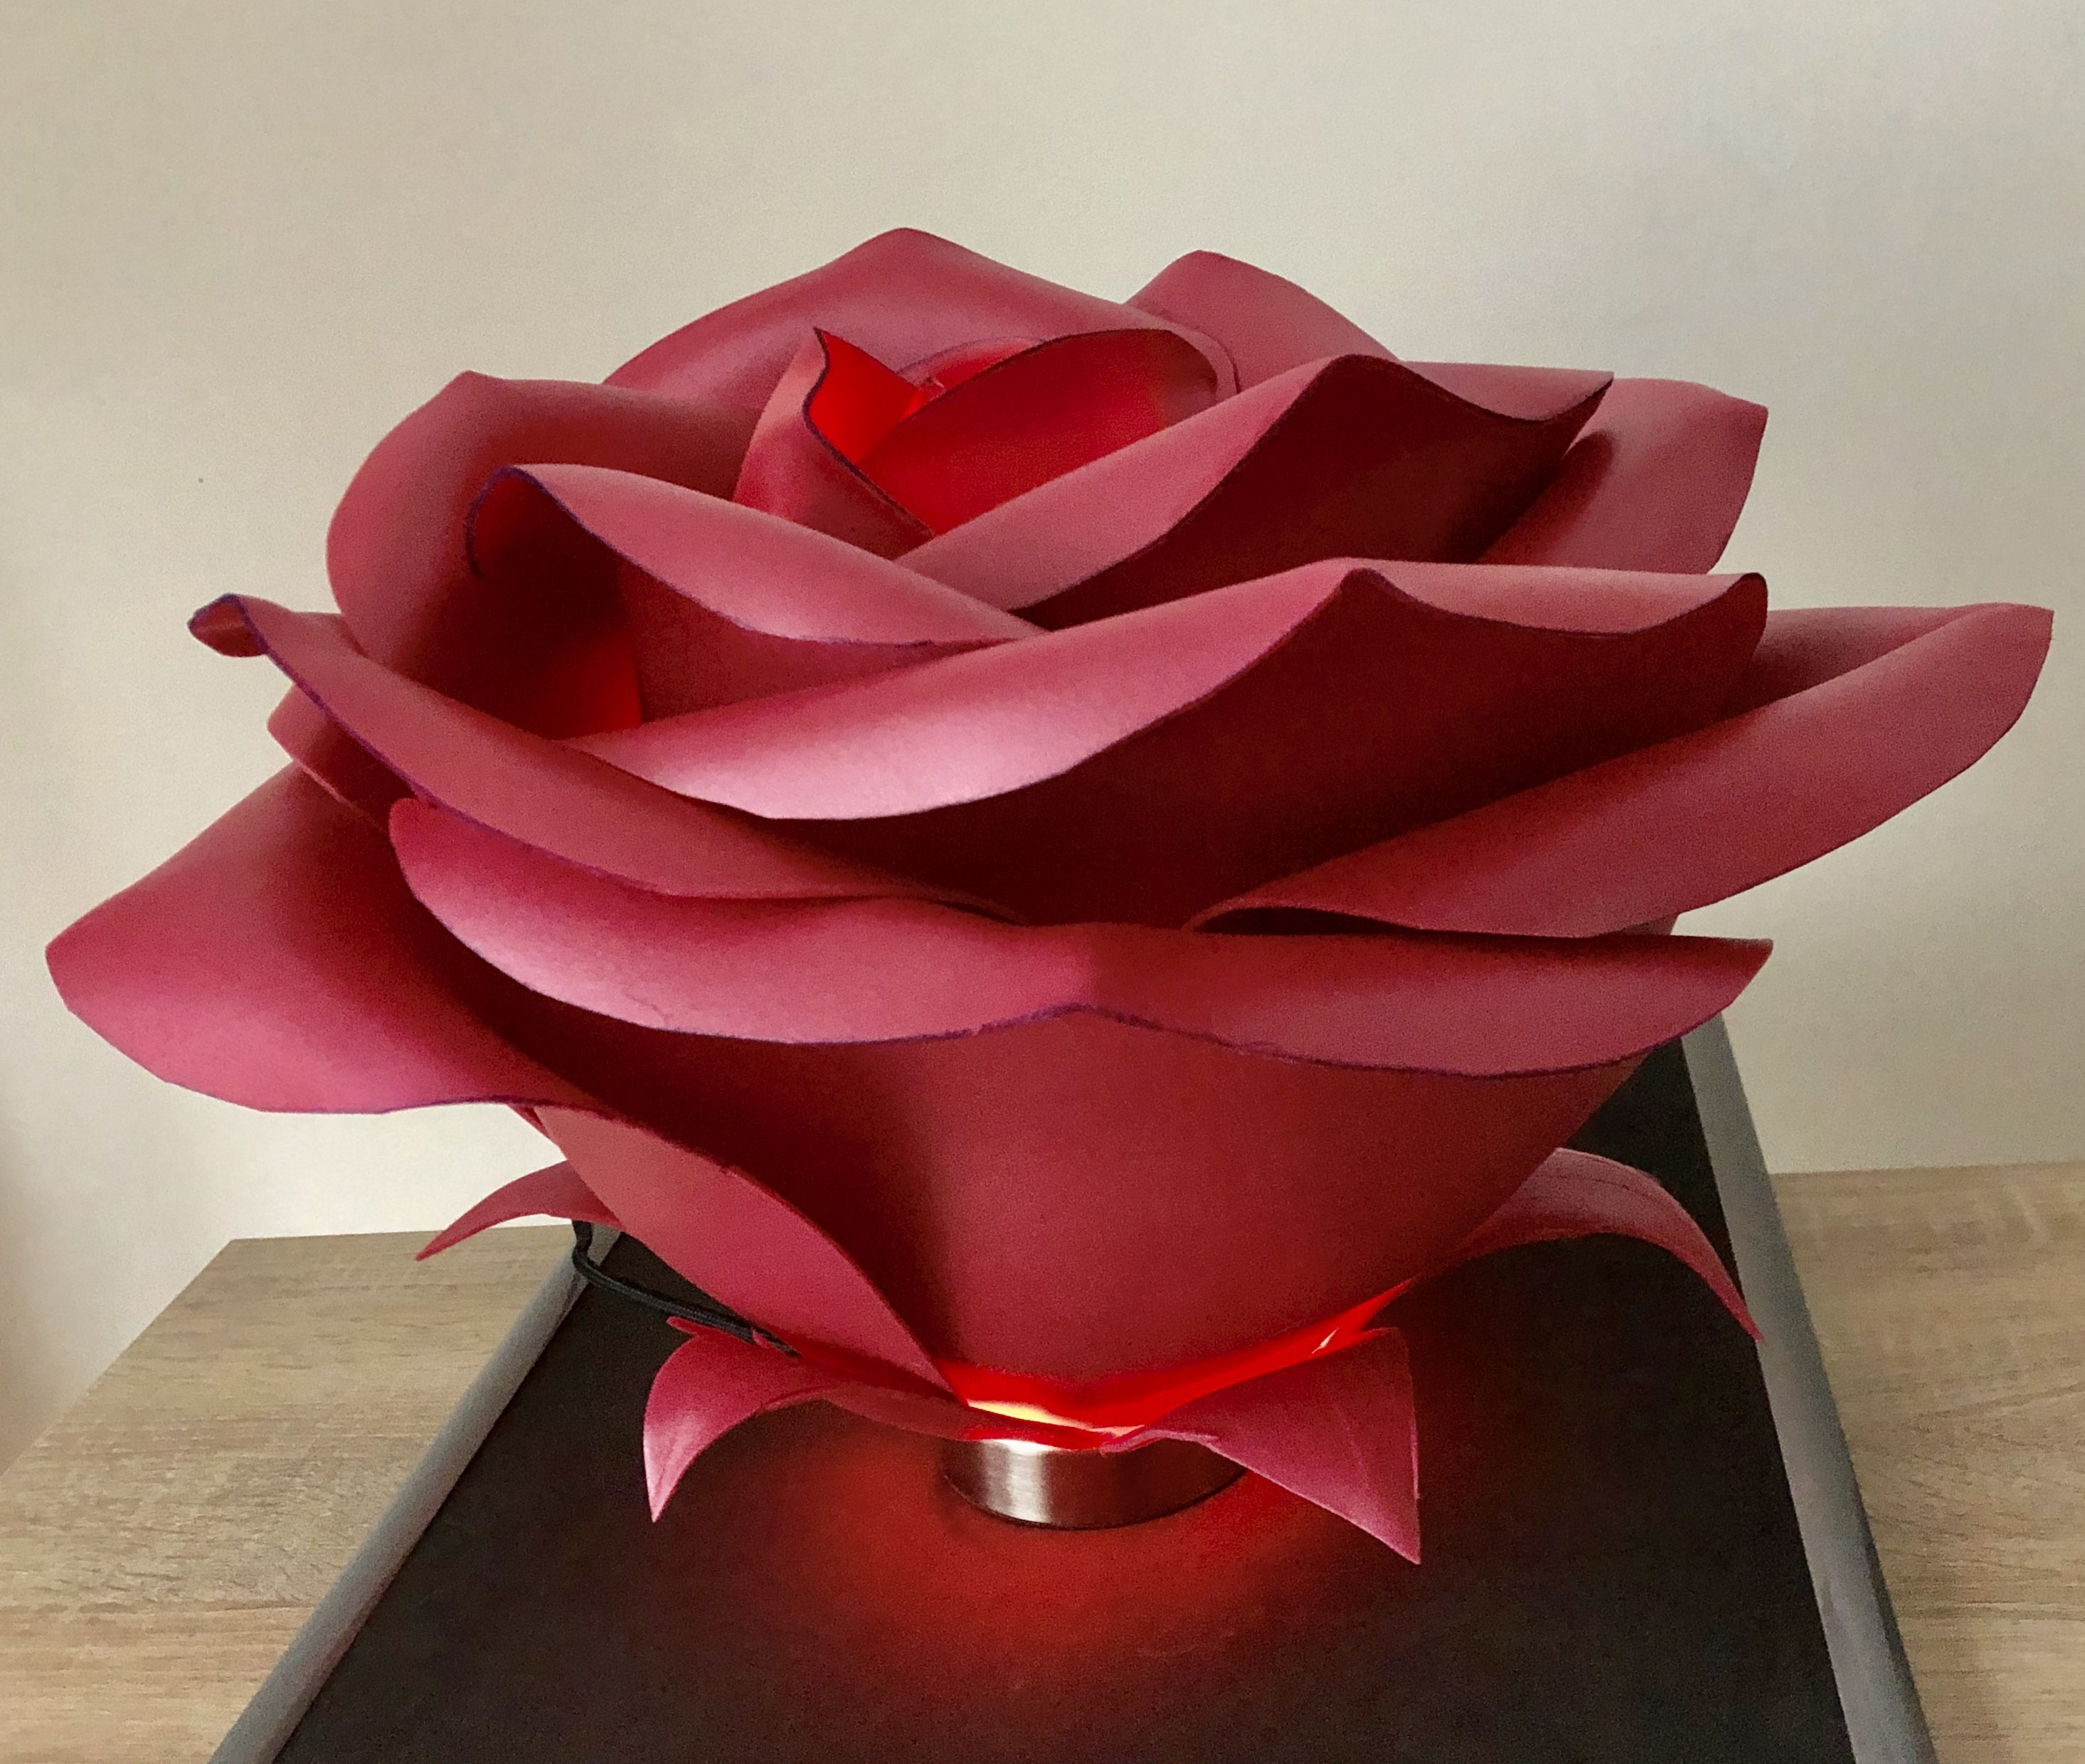 Table Lamp With Wine Red Rose In 2020 Flower Lamp Giant Flowers Red Roses